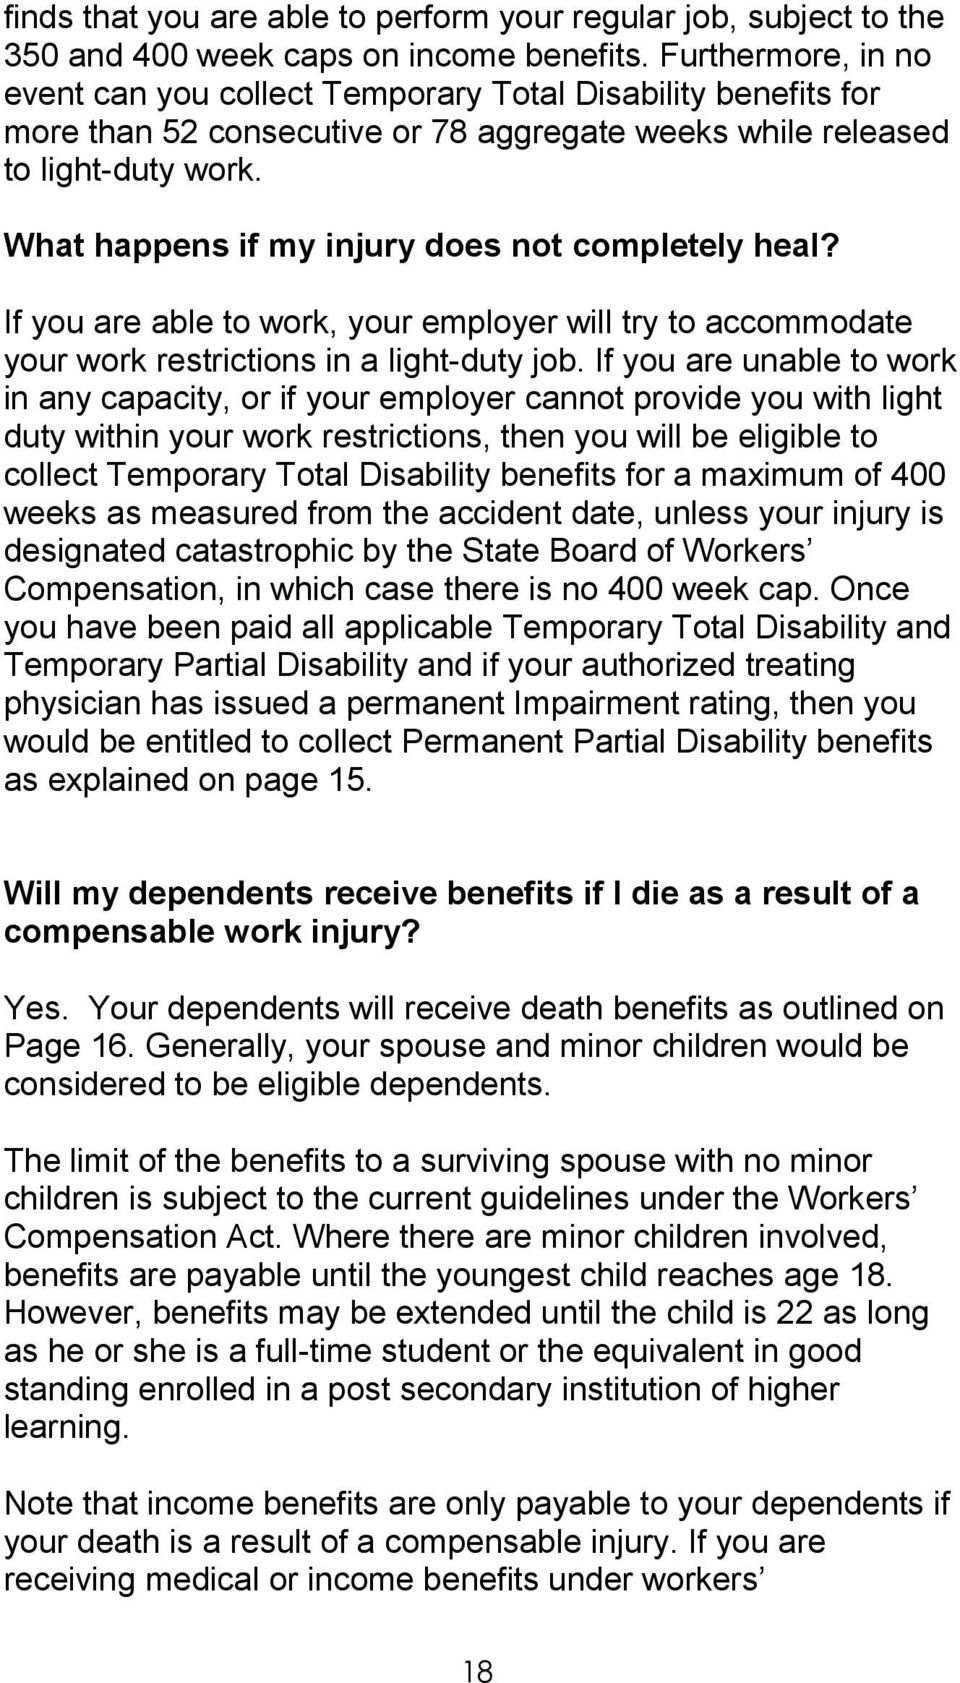 What happens if my injury does not completely heal? If you are able to work, your employer will try to accommodate your work restrictions in a light-duty job.